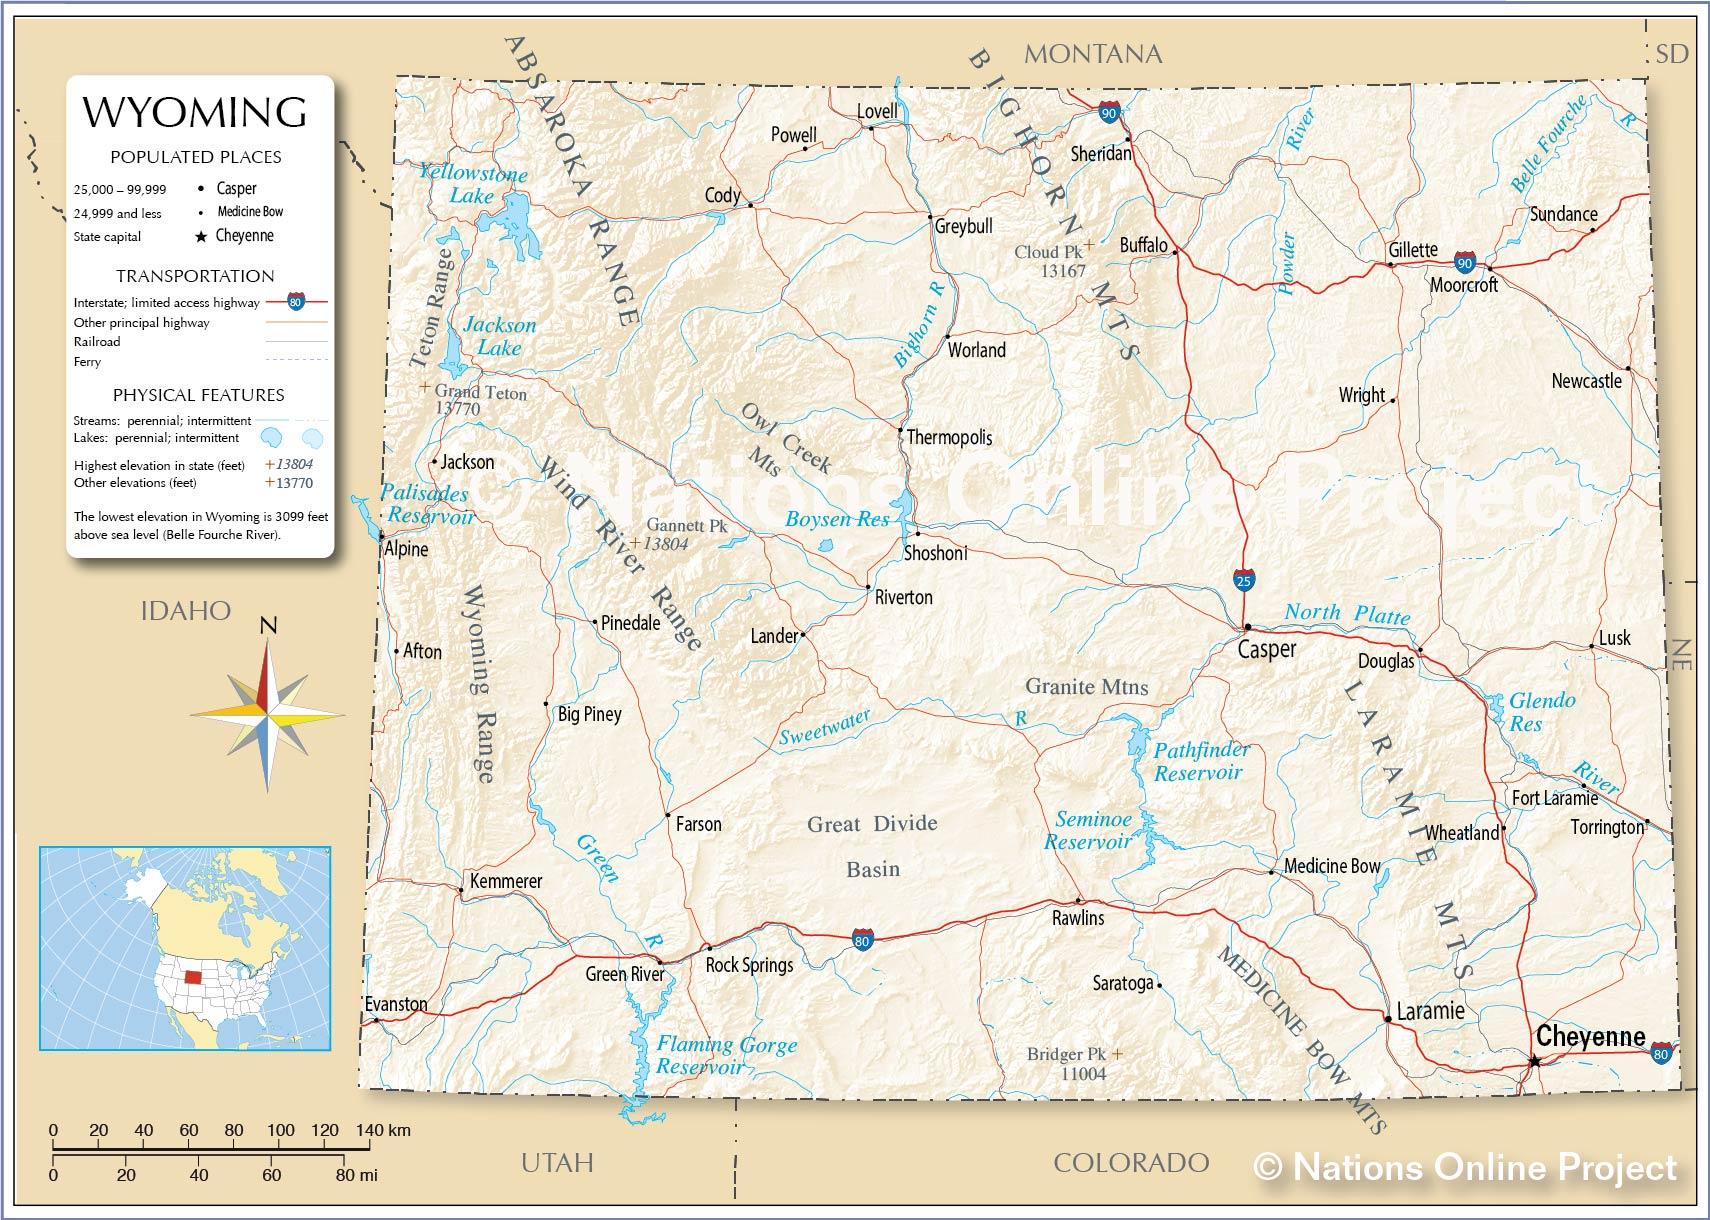 Reference Map Of Wyoming USA Nations Online Project - Show me a map of nevada